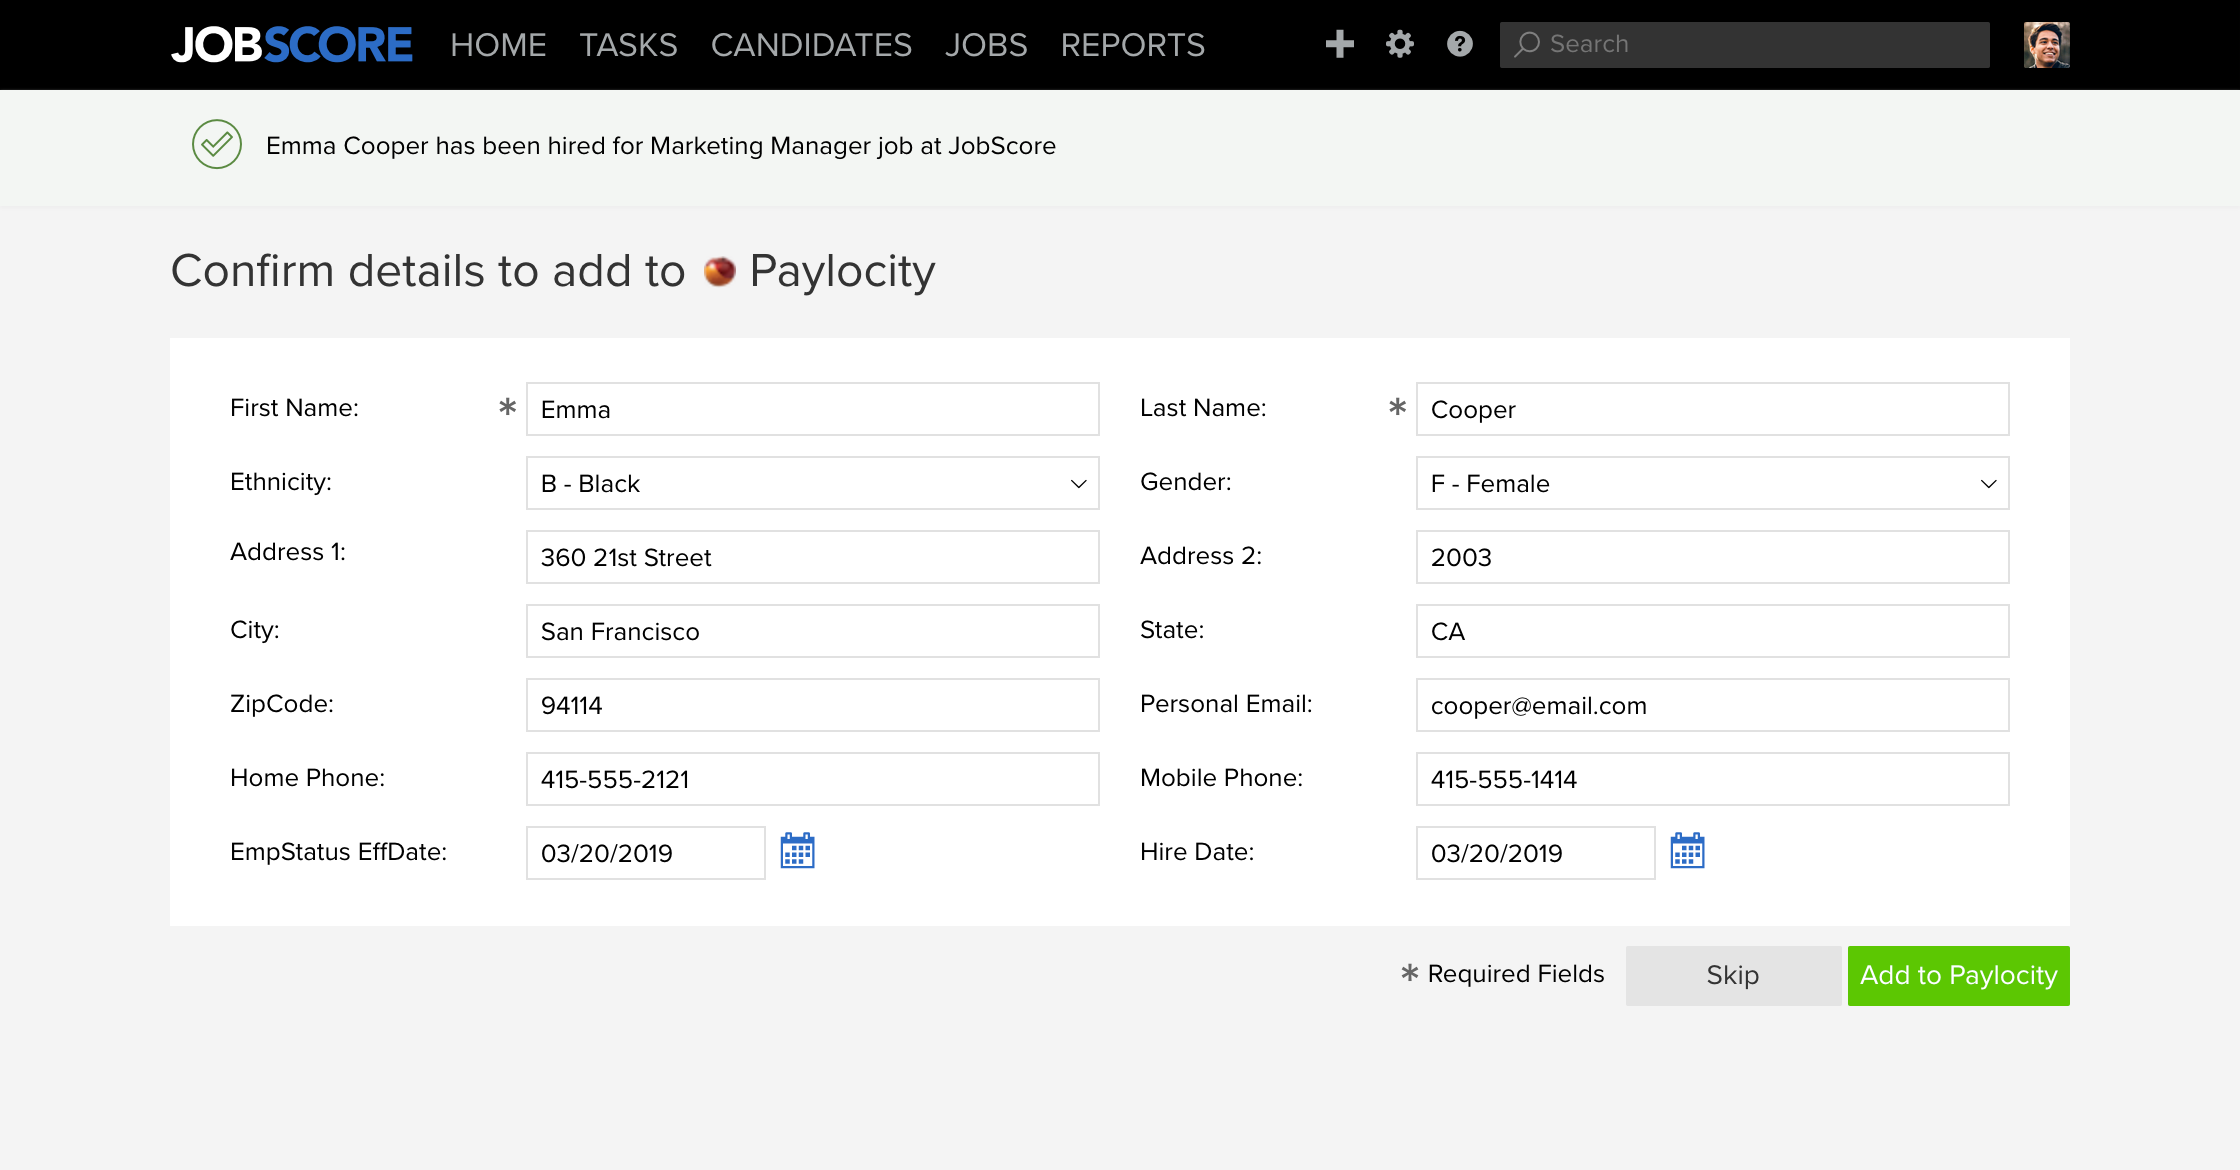 Confirm details to add to Paylocity page